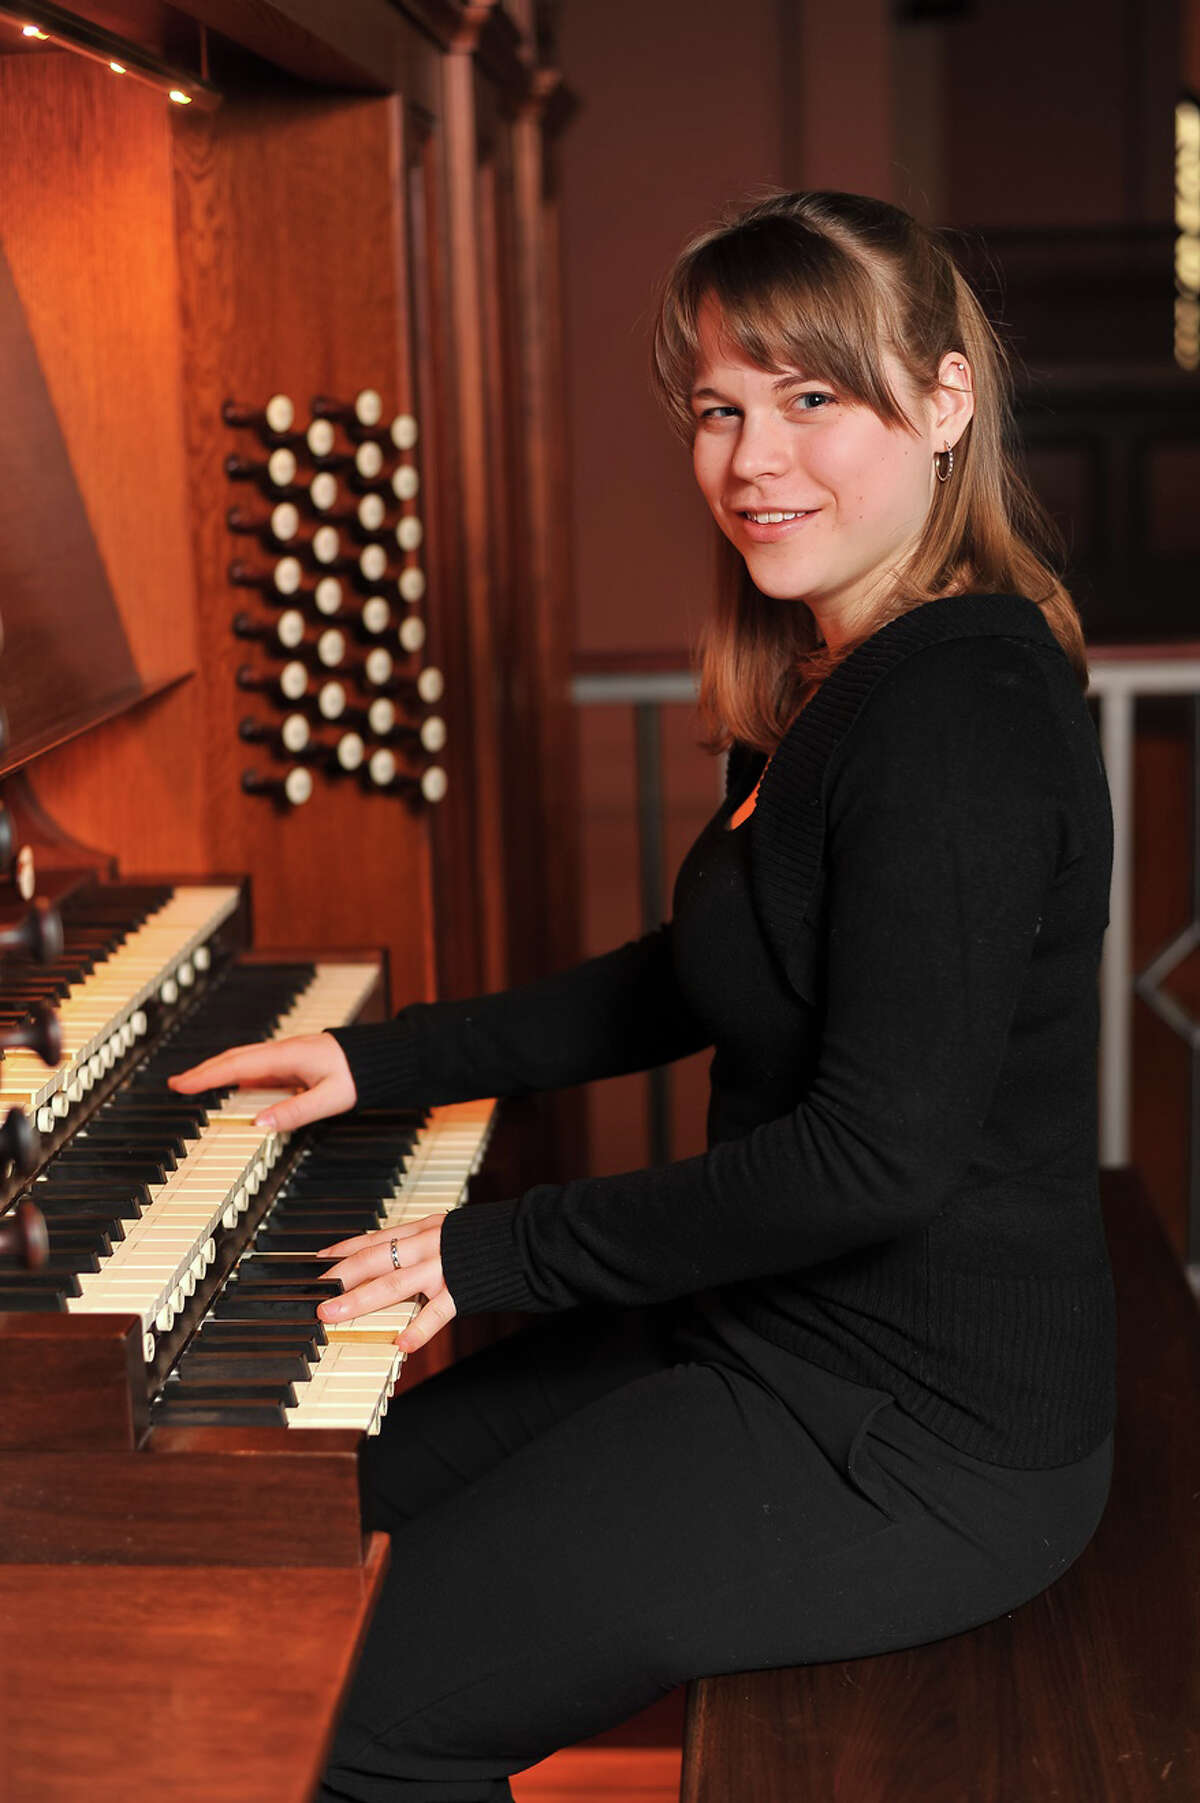 Katelyn Emerson, winner of the 2013 M. Louise Milerl Scholarhip in organ studies, will perform a short recital program on the recently restored pipe organ at the Cathedral of Saint Augustine in Bridgeport. The concert is Sunday, June 8, at 4 p.m.